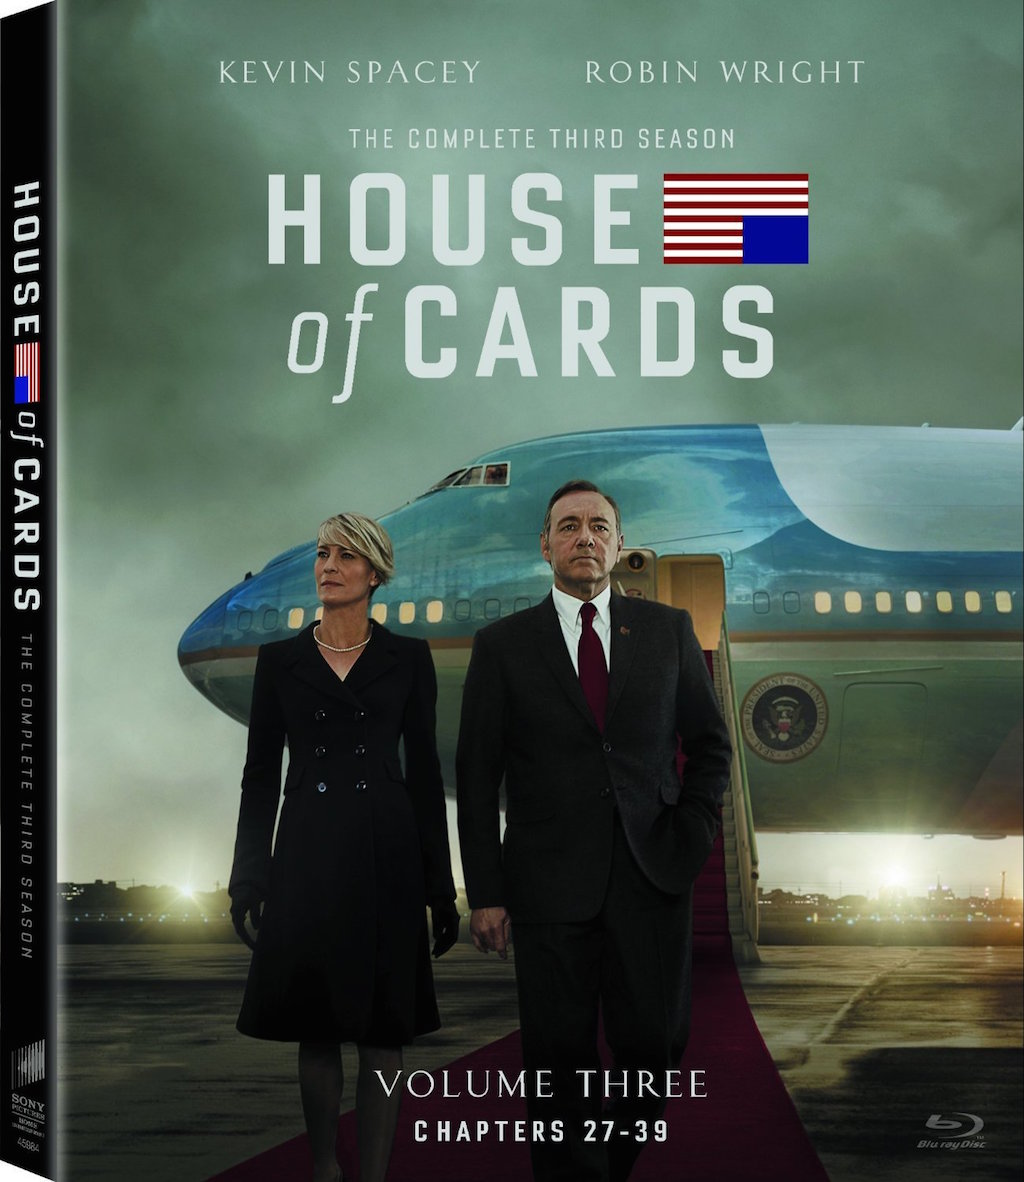 House of Cards Season 3 Blu-ray Box Cover Art